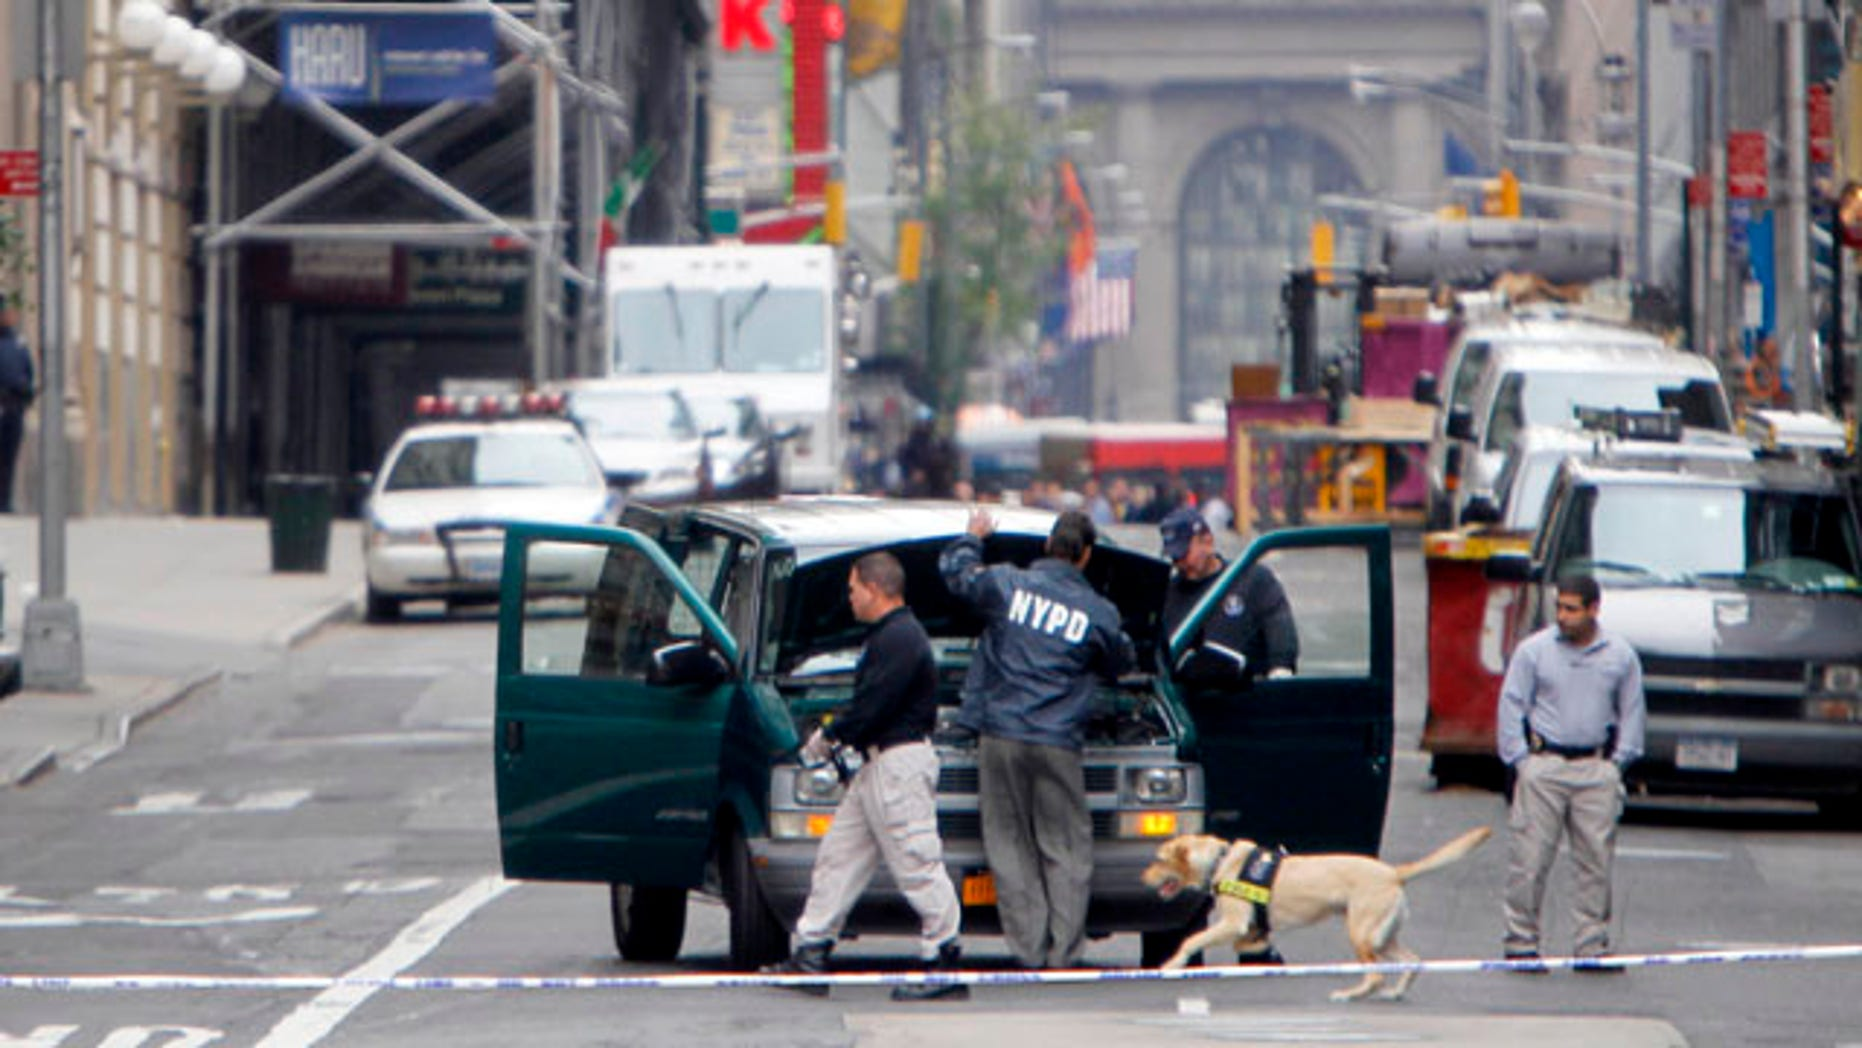 Oct. 20: Emergency personnel inspect a suspicious vehicle parked in the middle of a street near Times Square in New York. New York City police reopened streets after investigating and moving the vehicle.